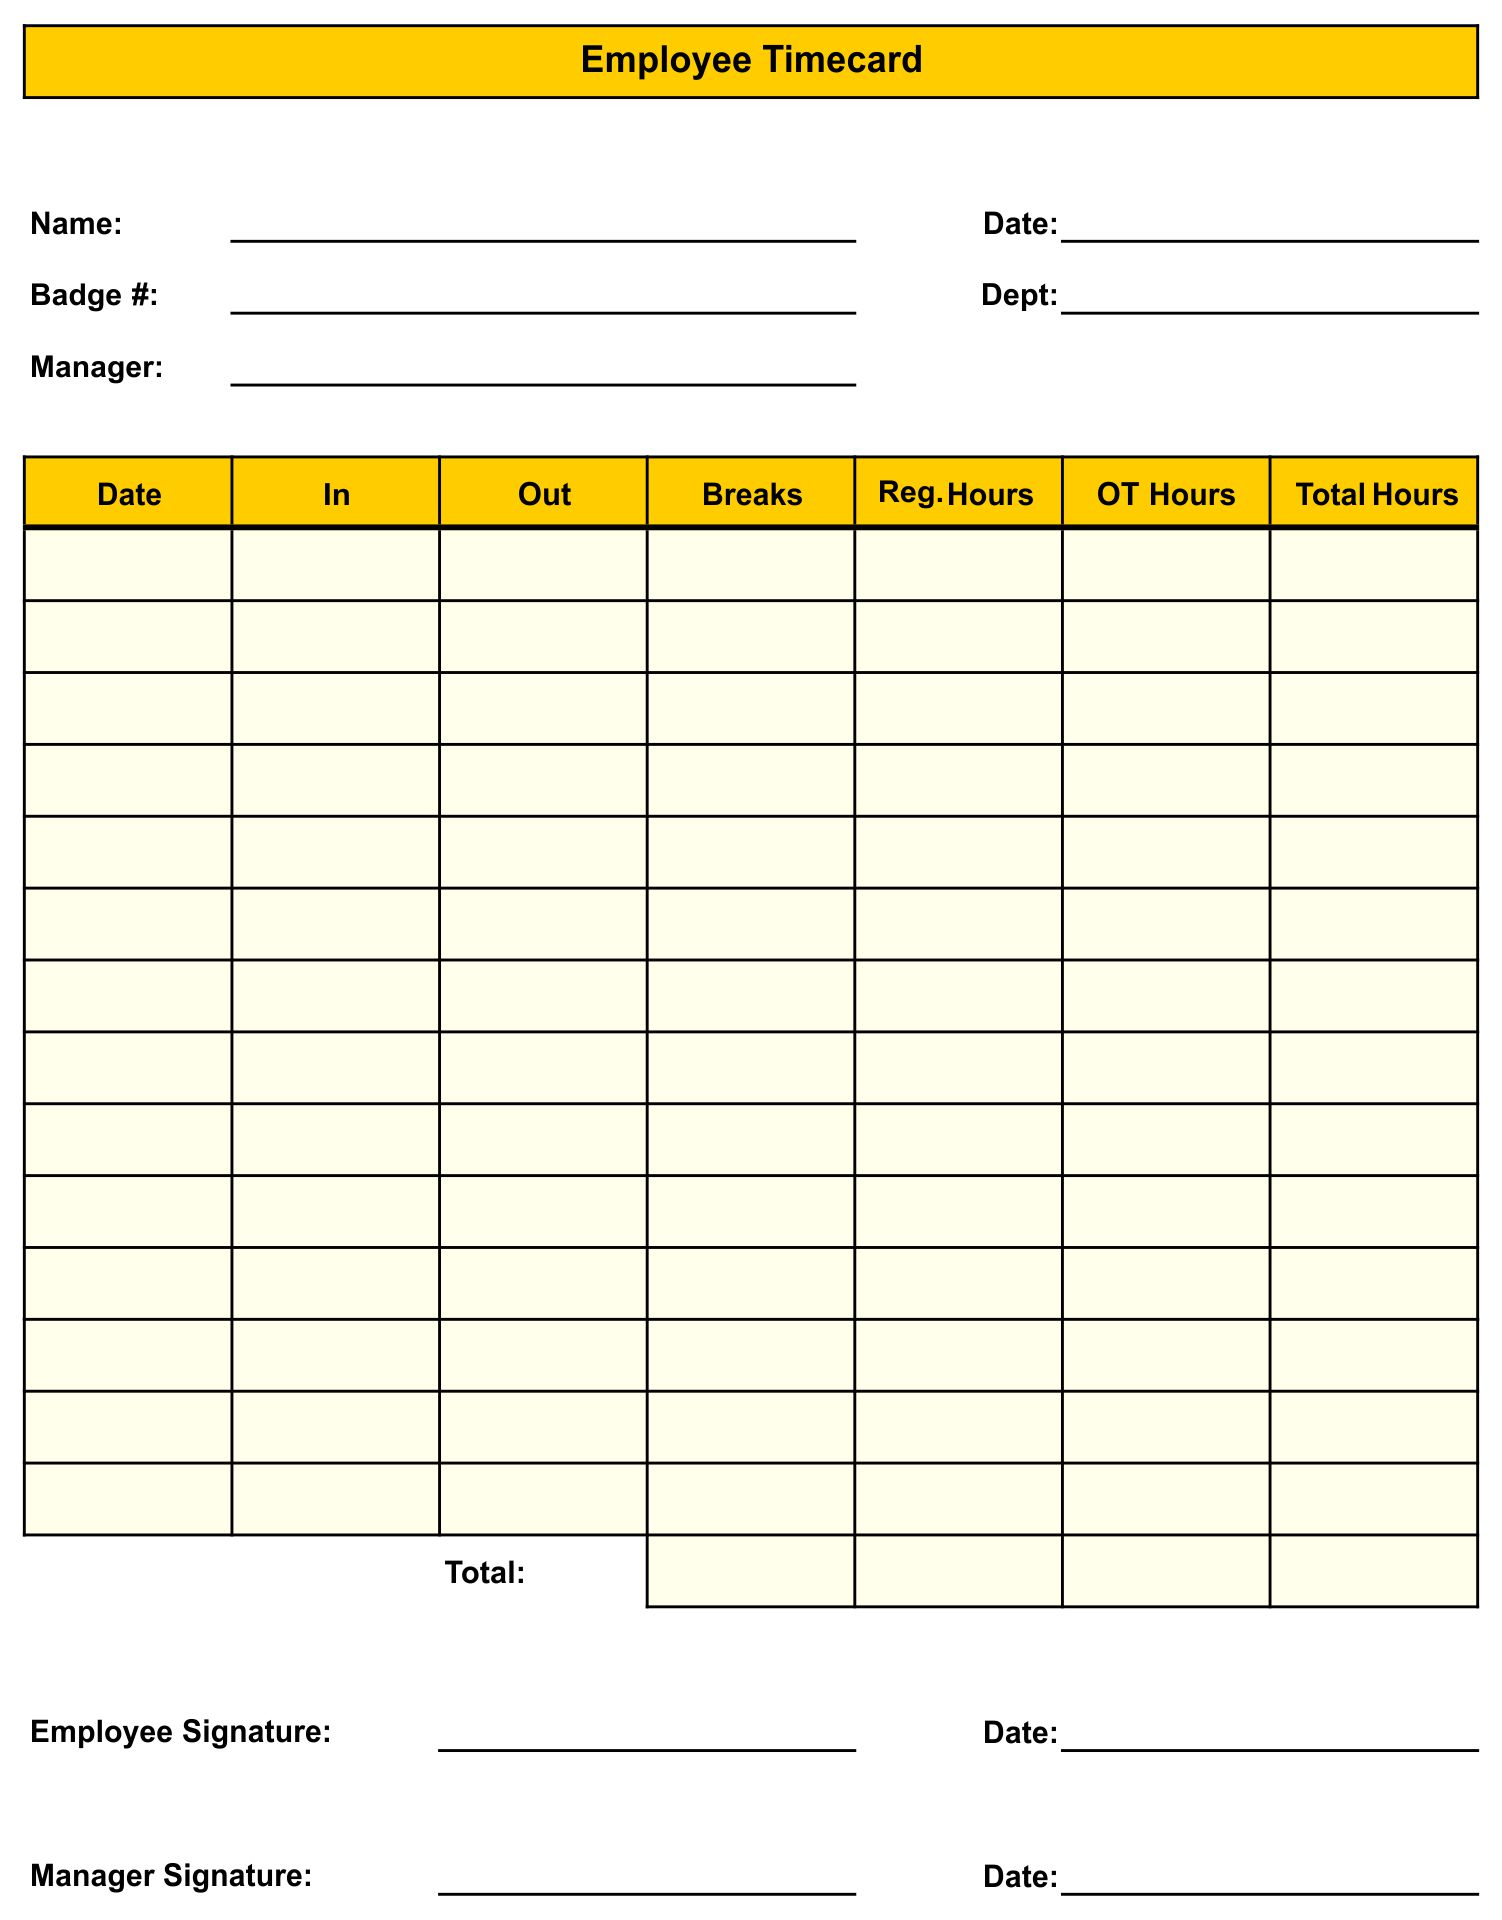 Free Printable Weekly Time Sheet. Free Printable Weekly Time Sheet in PDF format. If you need a form where employees can log the work hours, this weekly time sheet can be of great help. Print this printable Weekly Time Sheet free using your laser or inkjet printer.